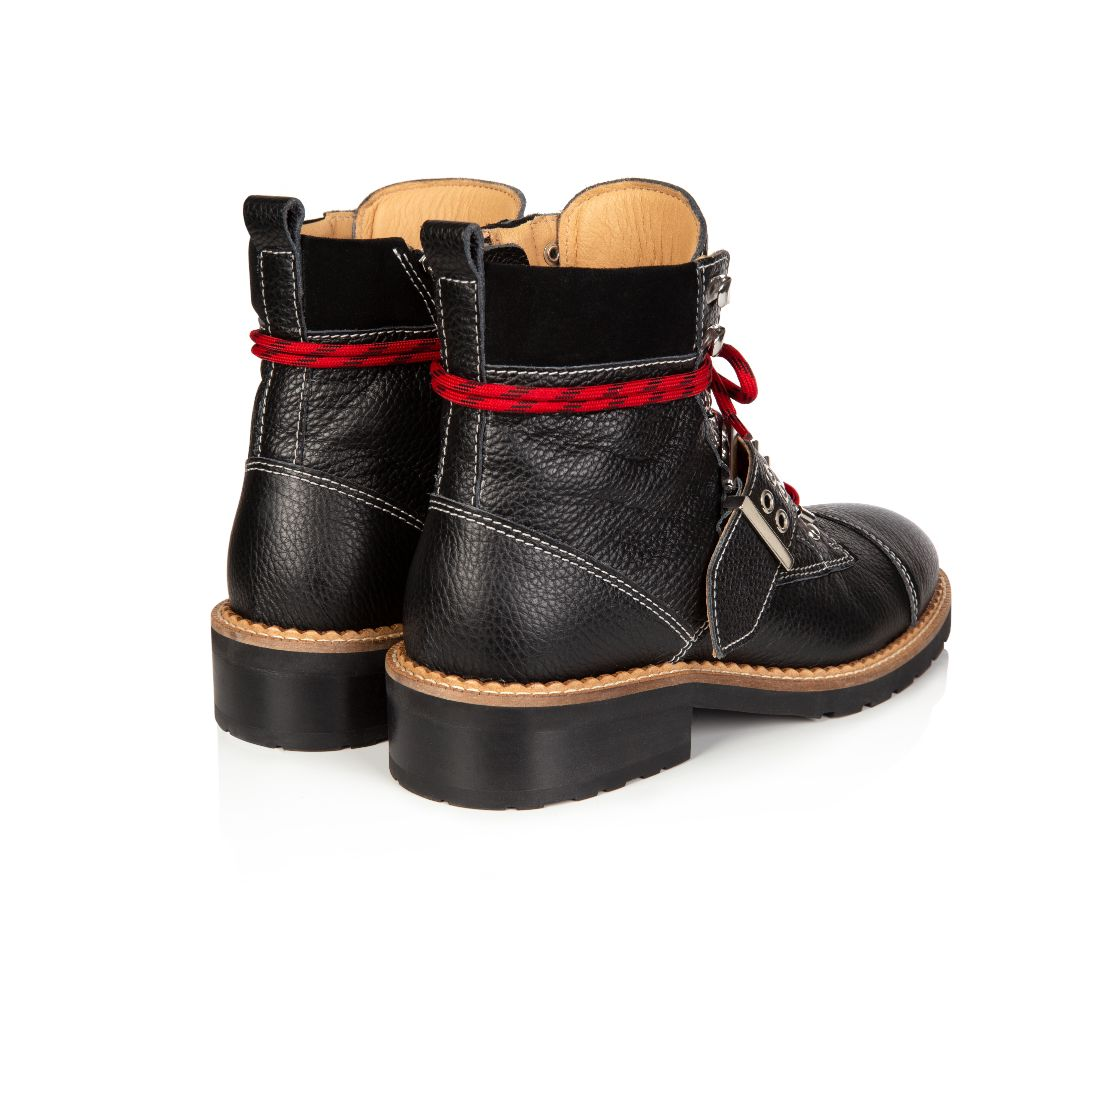 FREYA: BLACK LEATHER HIKER BOOTS